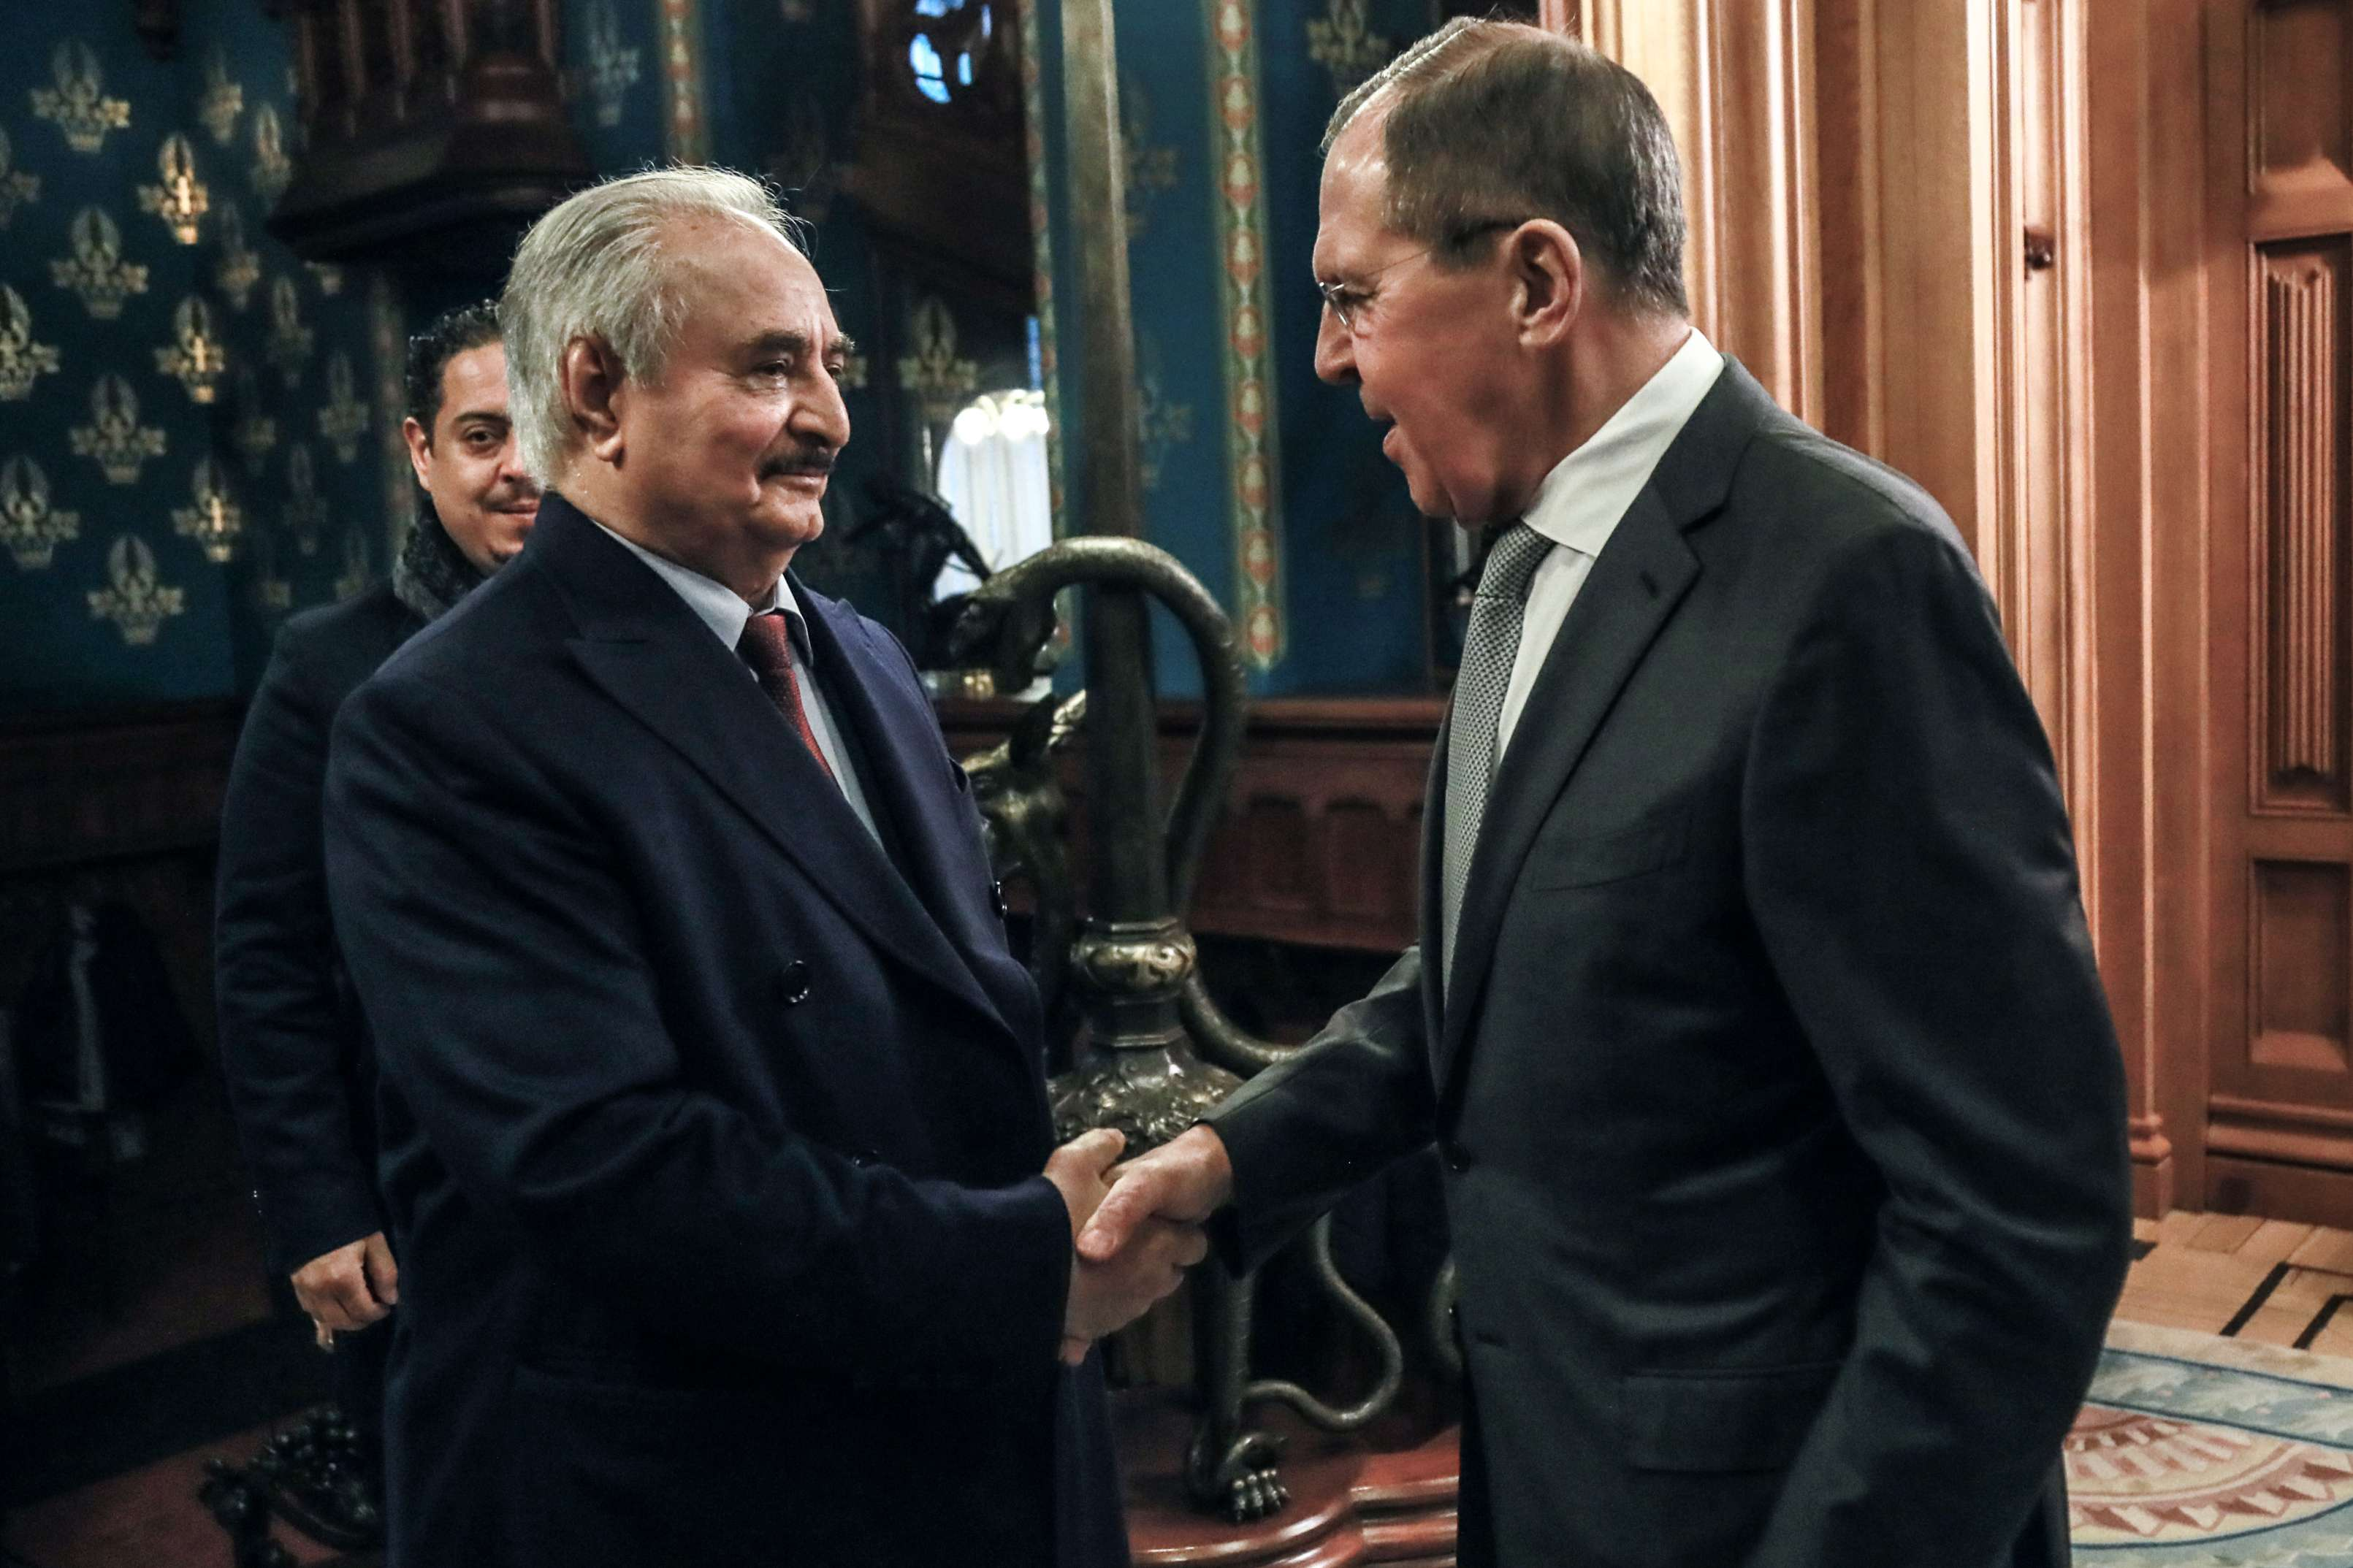 Russian Foreign Minister Sergey Lavrov (R) receives Libyan strongman Khalifa Haftar, leader of the self-styled Libyan National Army (LNA) ahead of the Russian-Turkish brokered ceasefire talks in Moscow, Russia, January 13, 2020. (DPA)